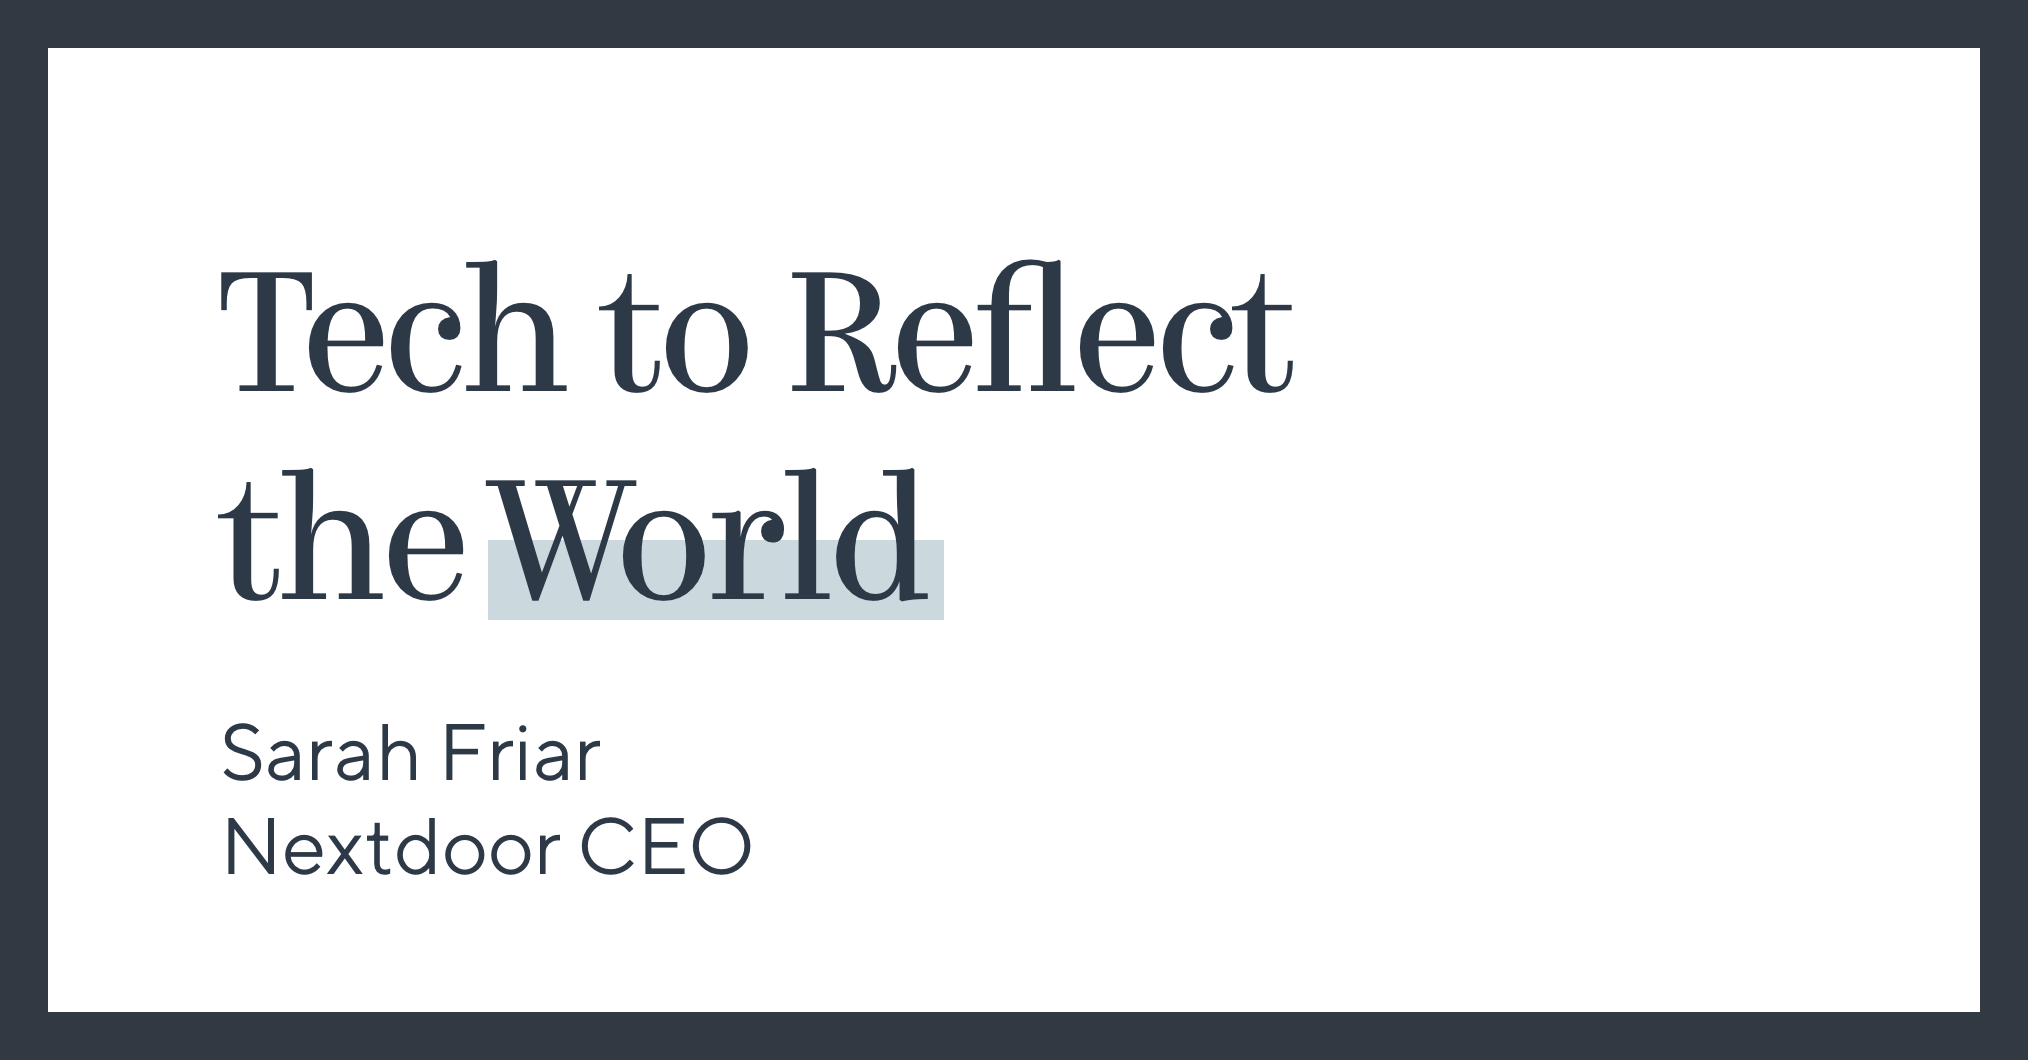 Tech to Reflect the World